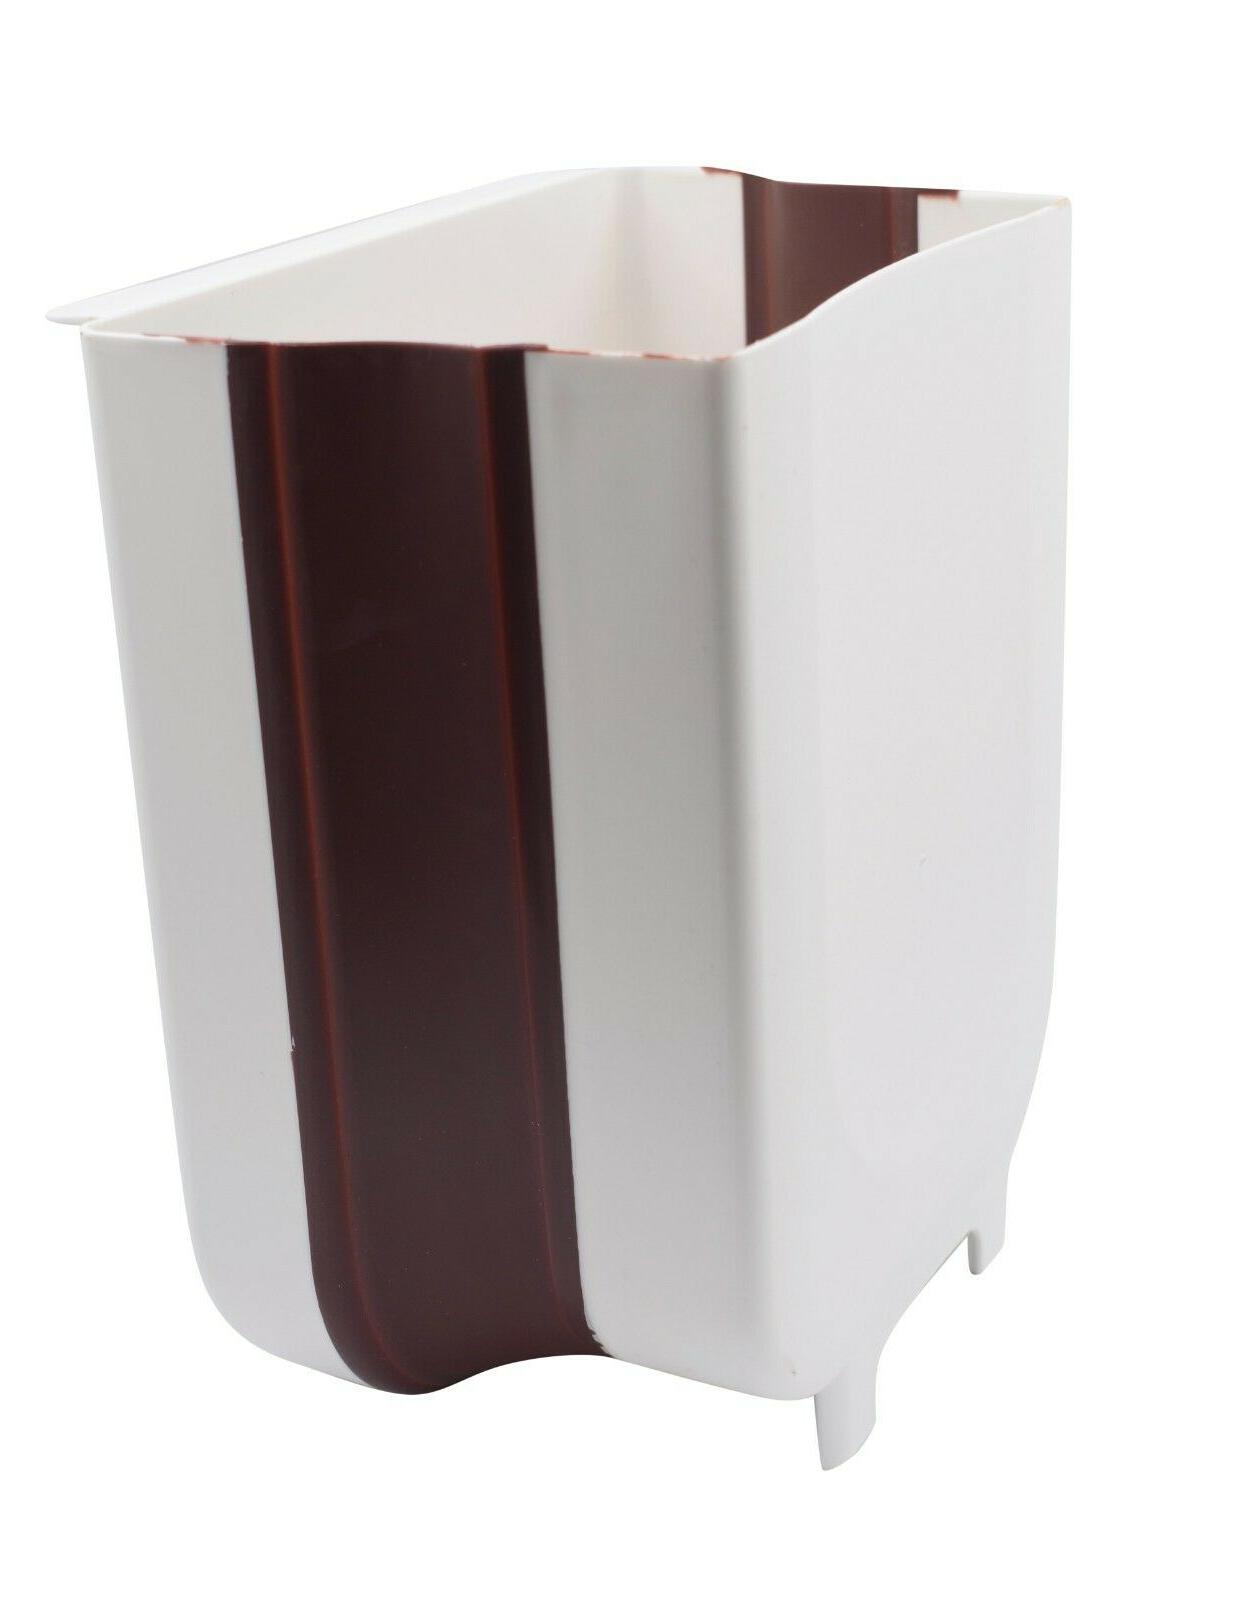 Hanging can for Kitchen Cabinet, Waste Bin, Collapsible